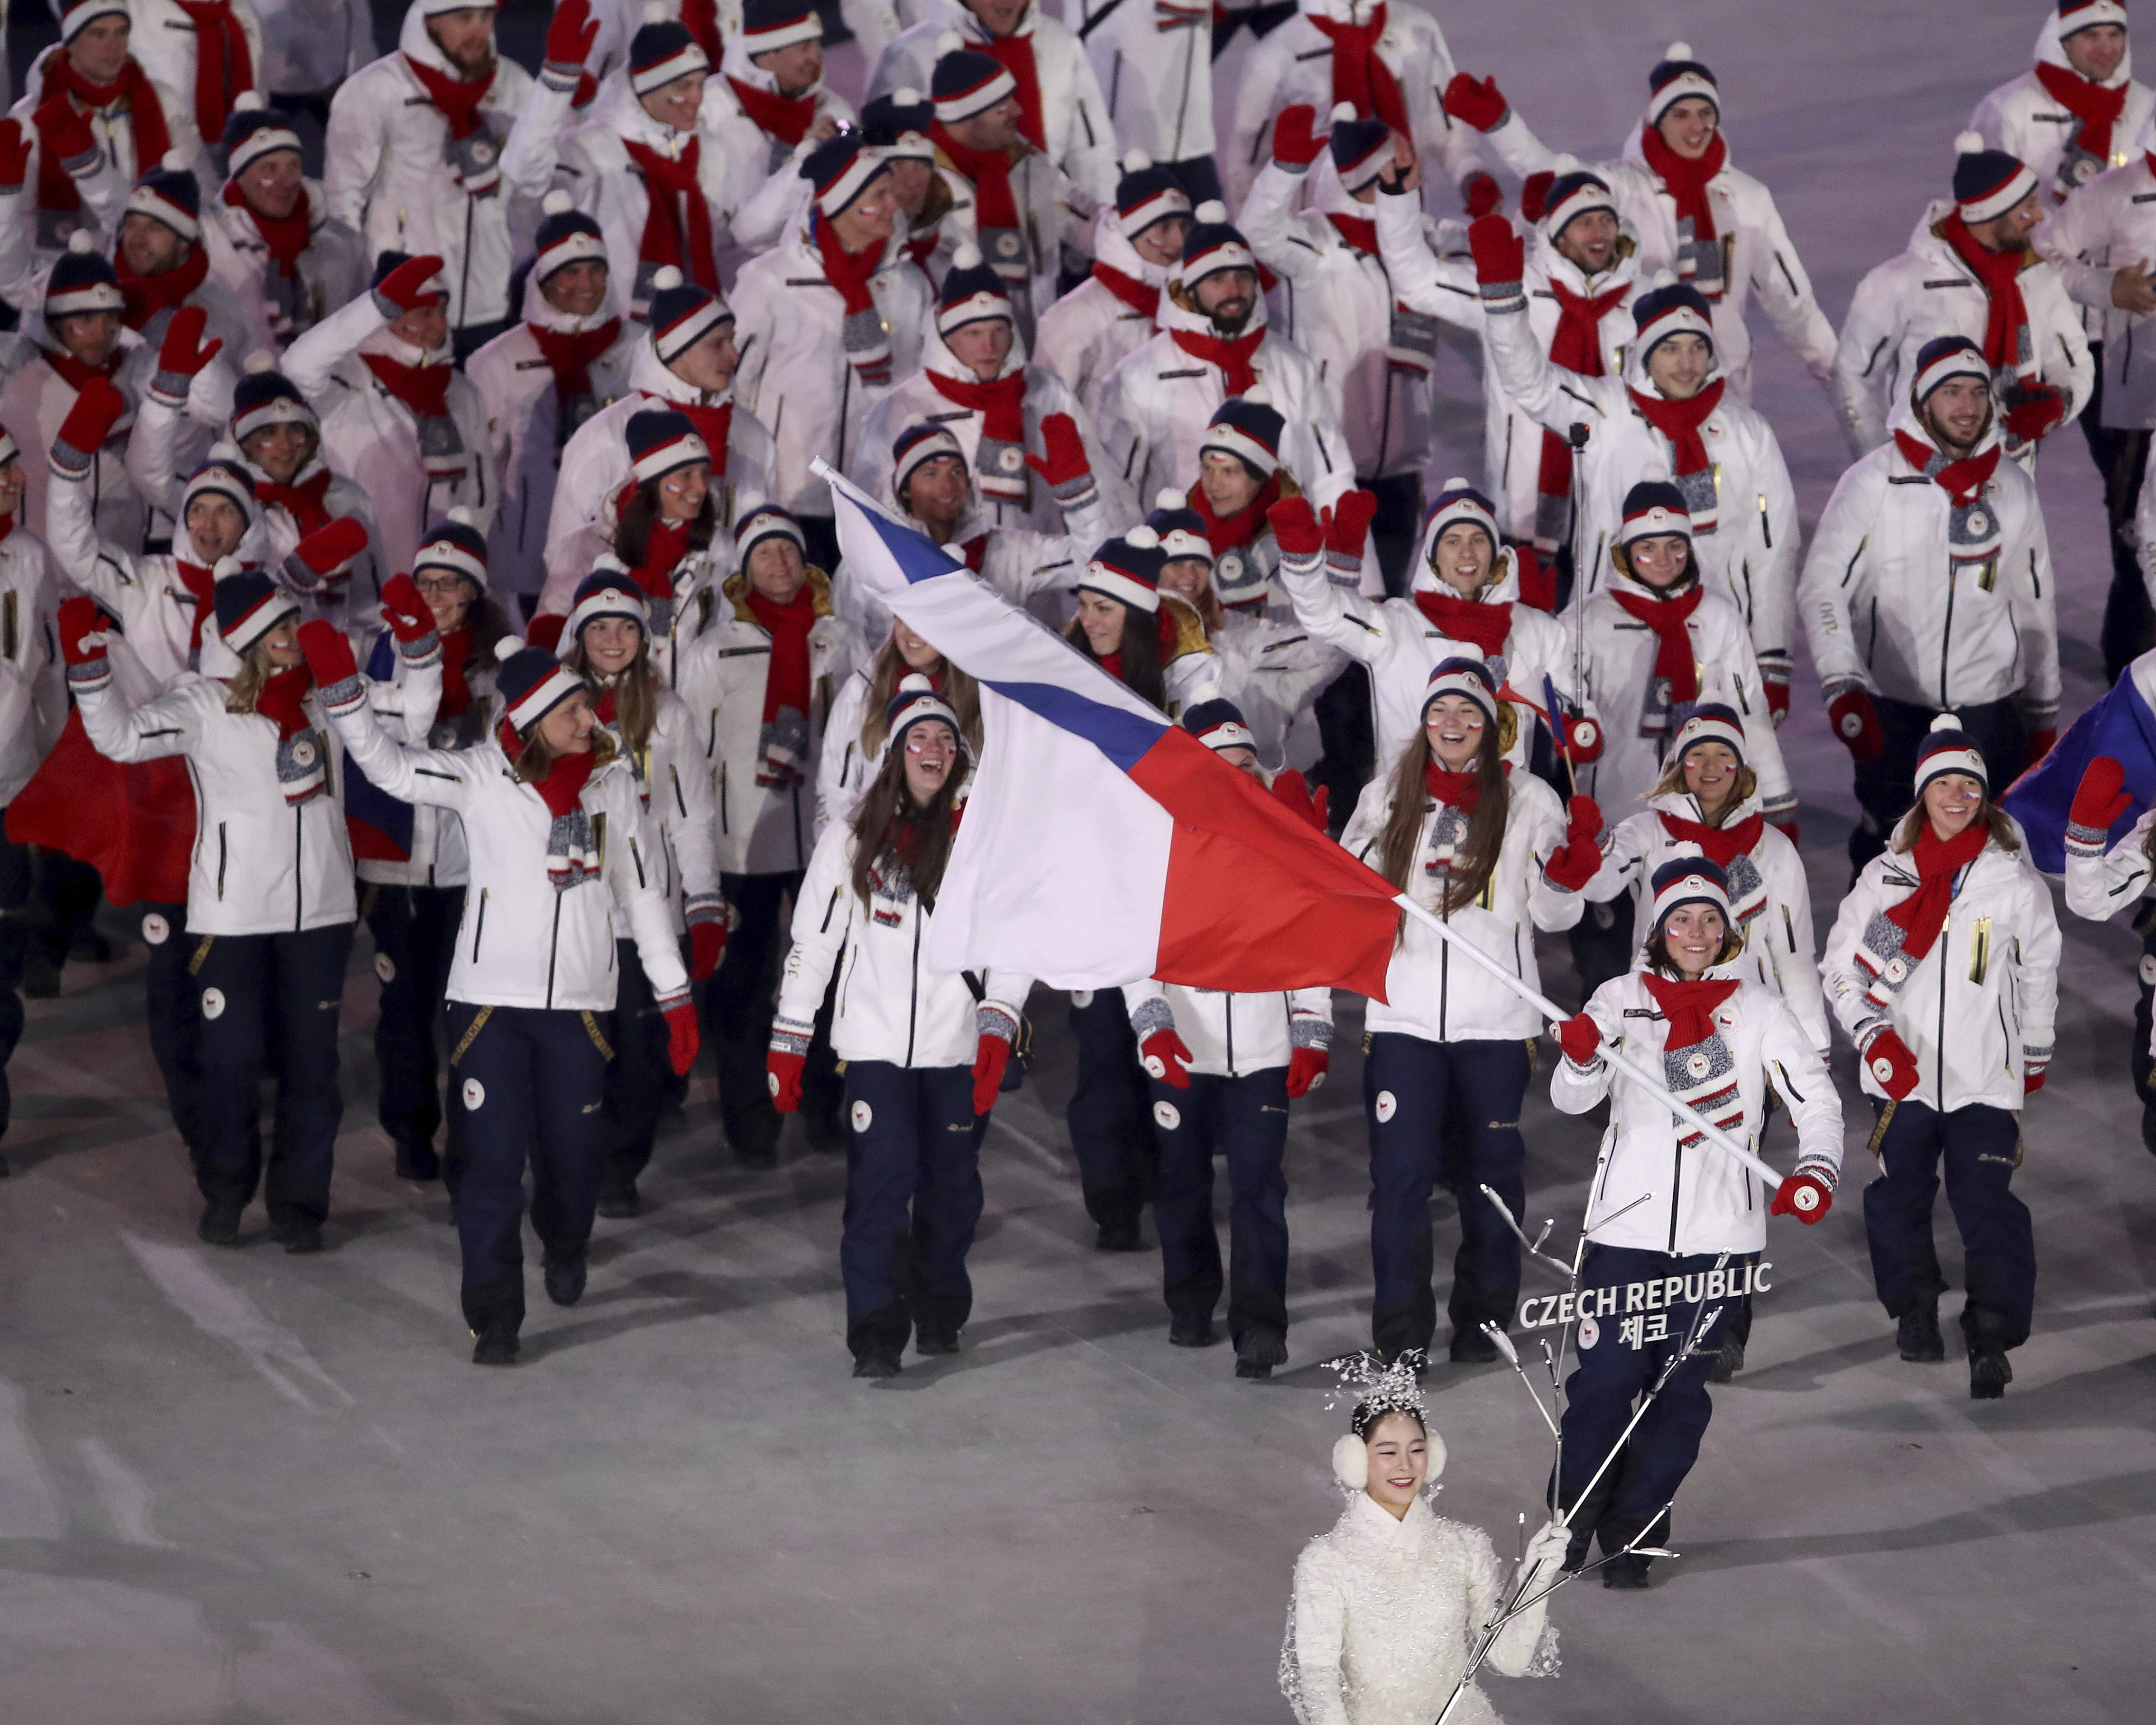 Eva Samkova carries the flag of the Czech Republic during the opening ceremony of the 2018 Winter Olympics in Pyeongchang, South Korea, Friday, Feb. 9, 2018. (Sean Haffey/Pool Photo via AP)